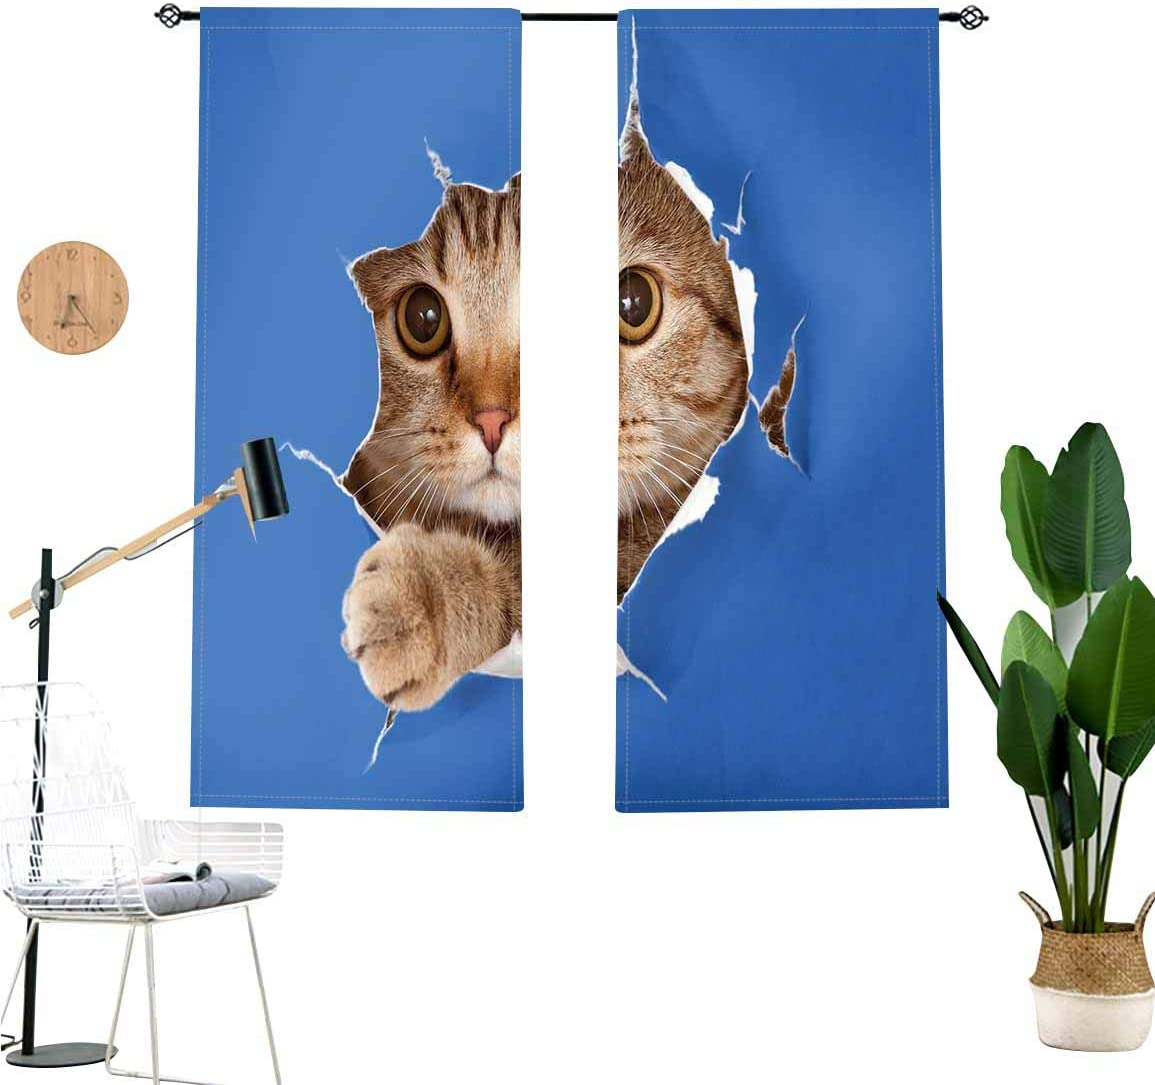 Animal Window Drapes,Cute Kitten in Paper Hole Paws Playful Scottish Cat Adorable Pet Room Decor Window Treatment 2 Panel Set,W36 x L24 Each Panel